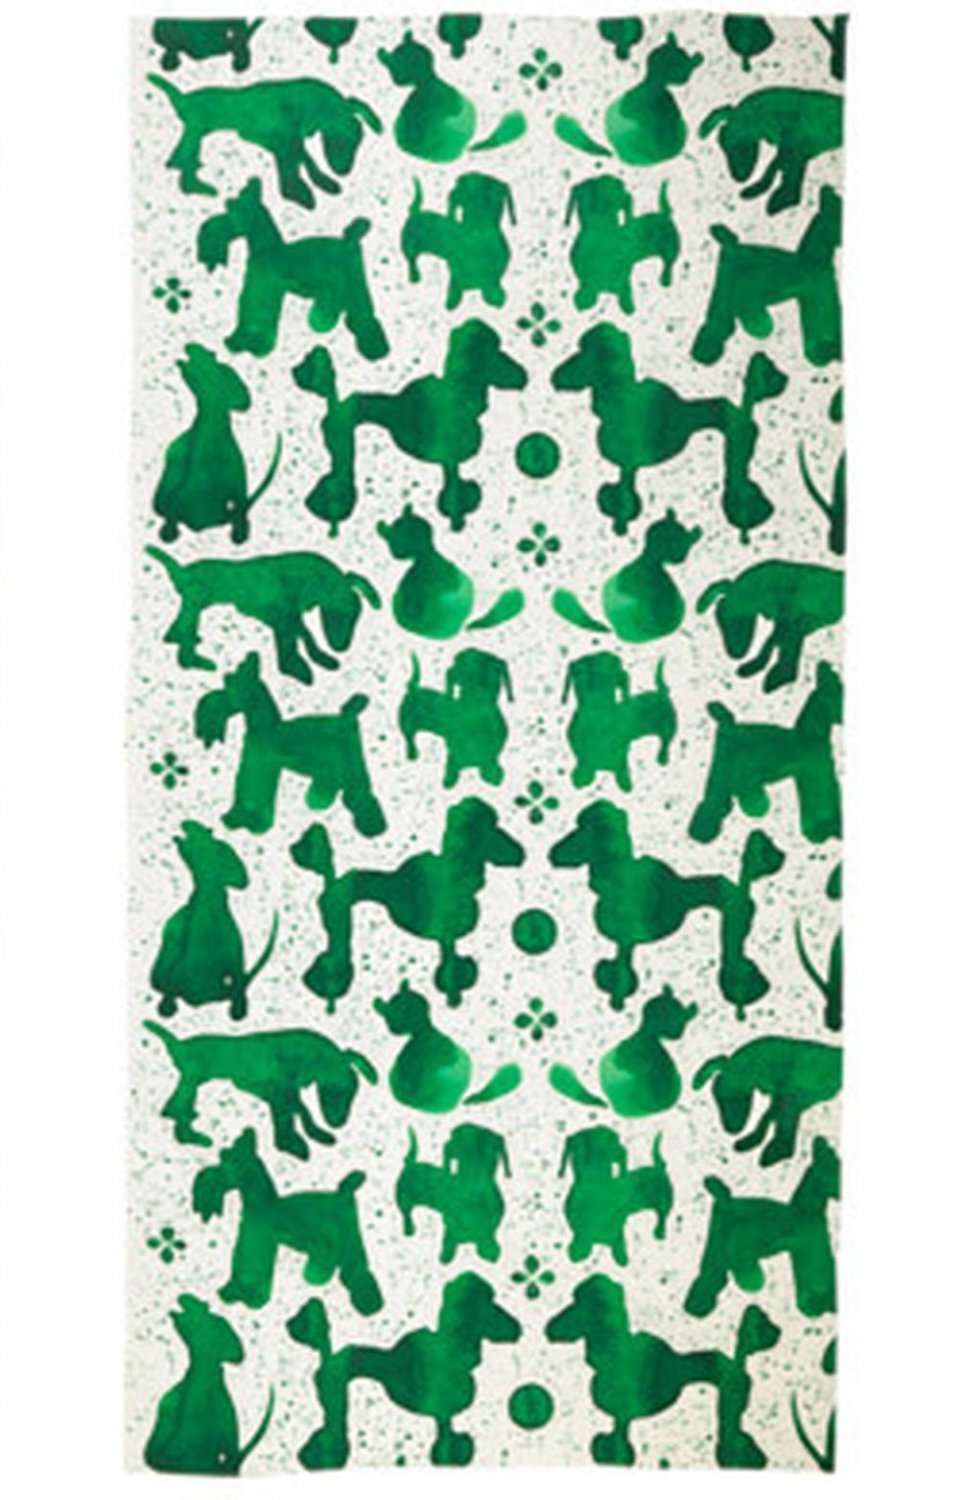 IKEA Sallskap Fabric Material DOGS Dots 3.25 Yd S�LLSKAP Green Cats Pre-cut